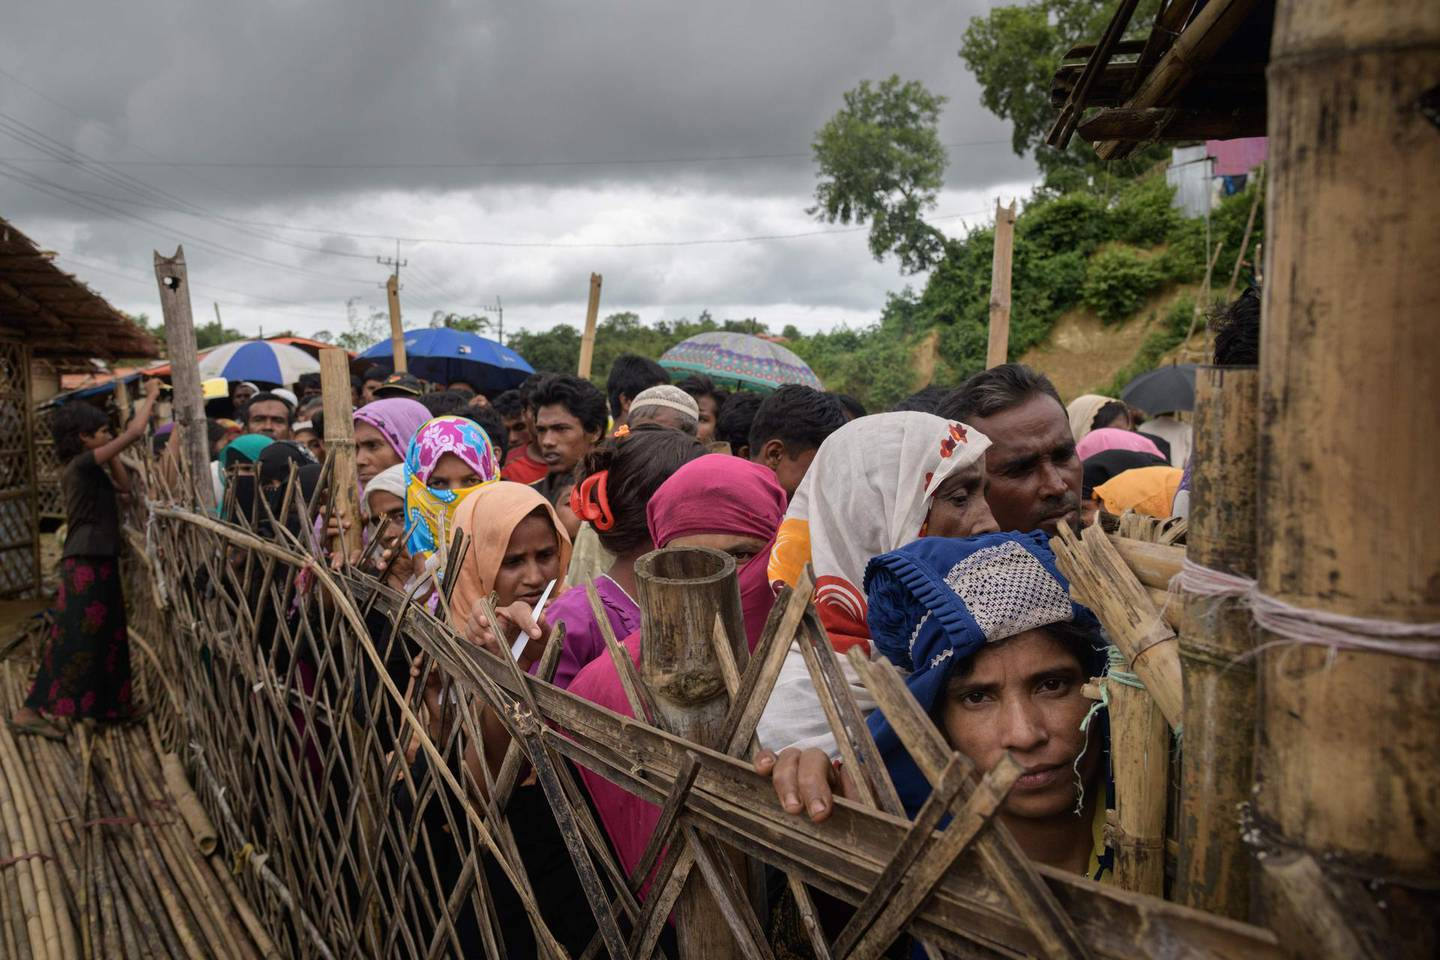 TOPSHOT - Rohingya refugees queue at an aid relief distribution centre at the Balukhali refugee camp near Cox's Bazar on August 12, 2018. (Photo by Ed JONES / AFP)